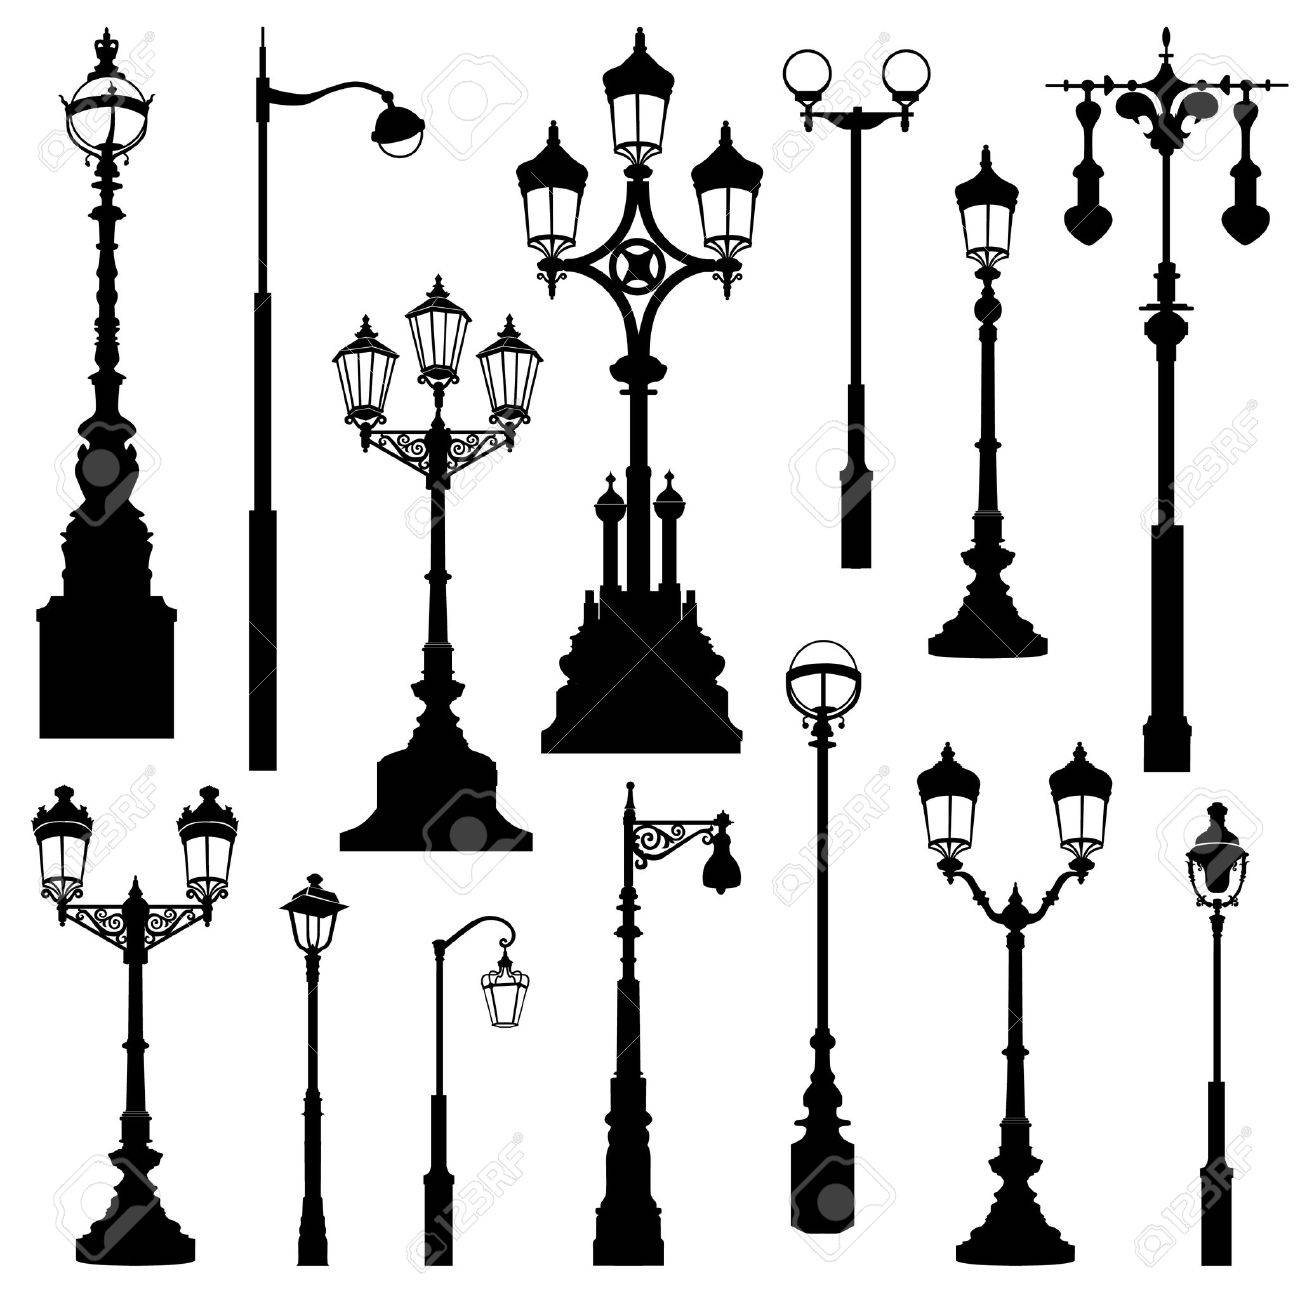 Lamp Post Images  for Street Lamp Post Design  146hul